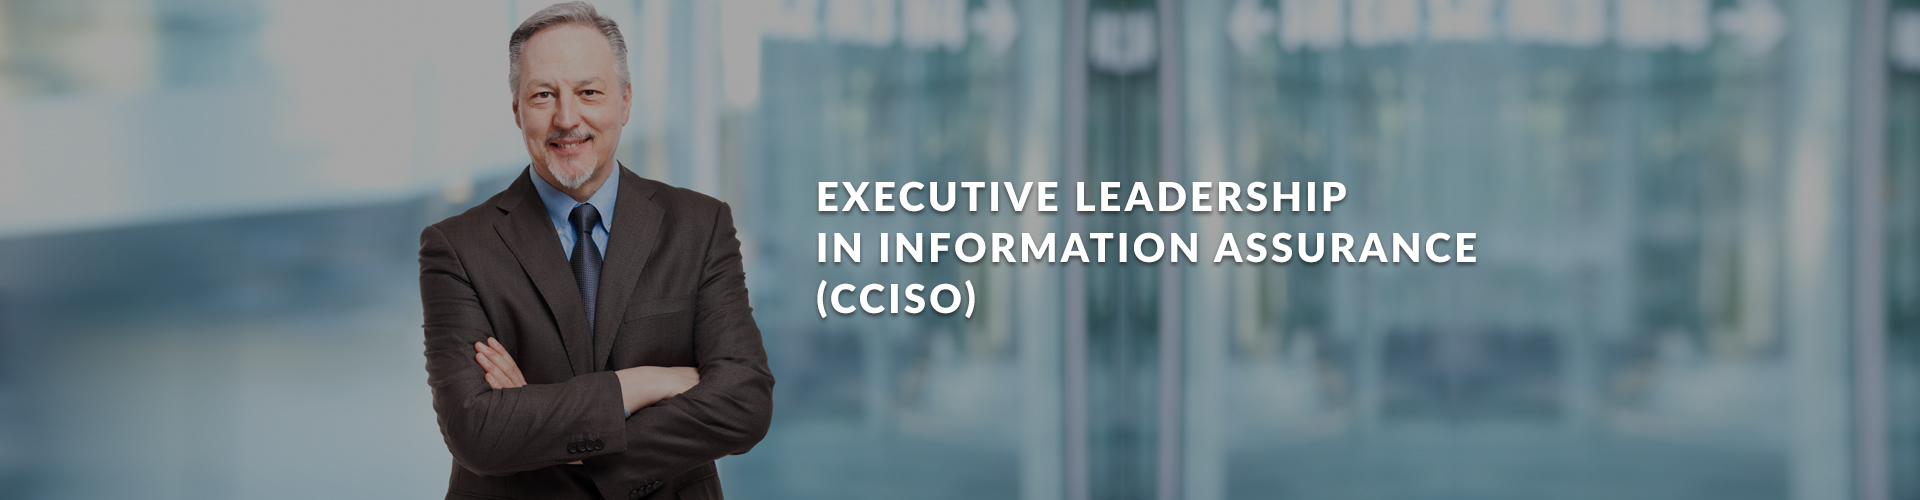 Executive Leadership in Information Assurance (CCISO)